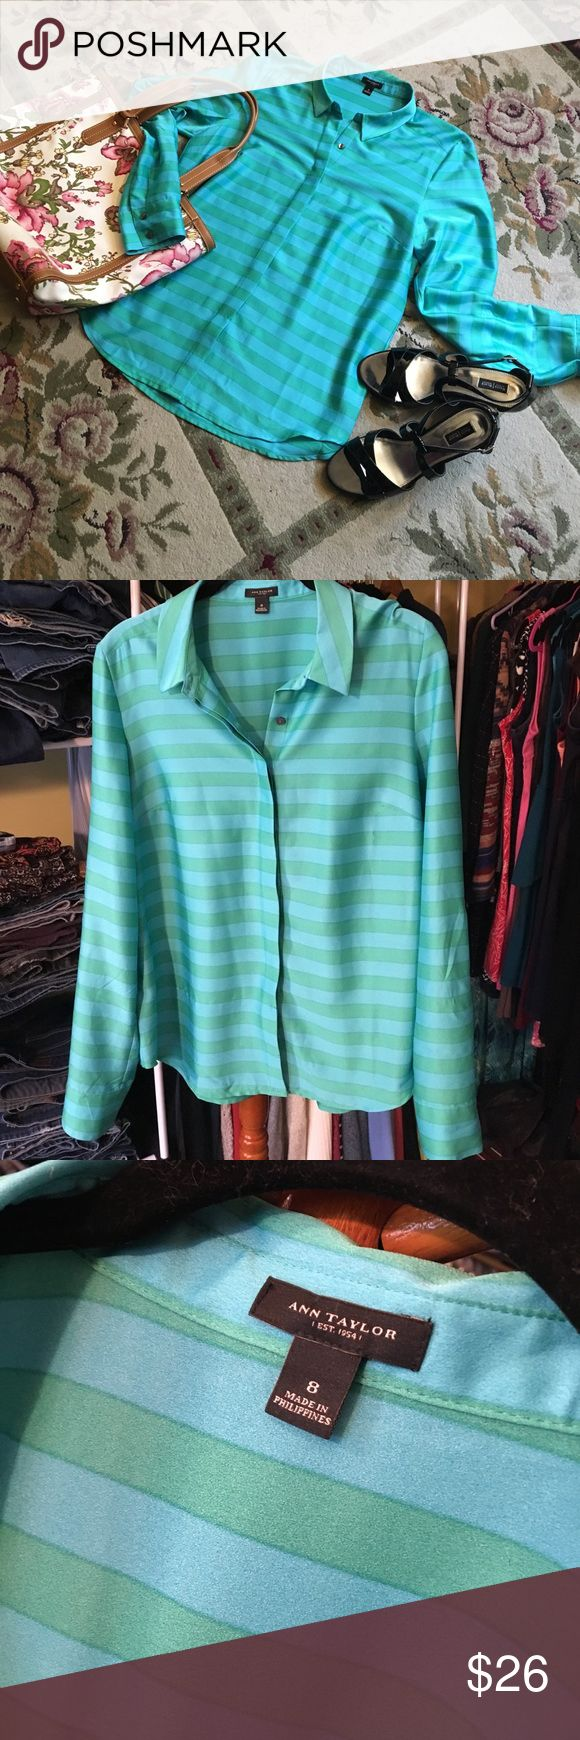 """Ann Taylor Blouse BNWOT Ann Taylor blouse. Hidden buttons. Bust darts and button cuffs. Button and strap to hold sleeves at 3/4 length if desired. 18"""" pit to pit. 25"""" shoulder to hem. Talbots purse and White House Black Market shoes sold separately. Ann Taylor Tops Blouses"""